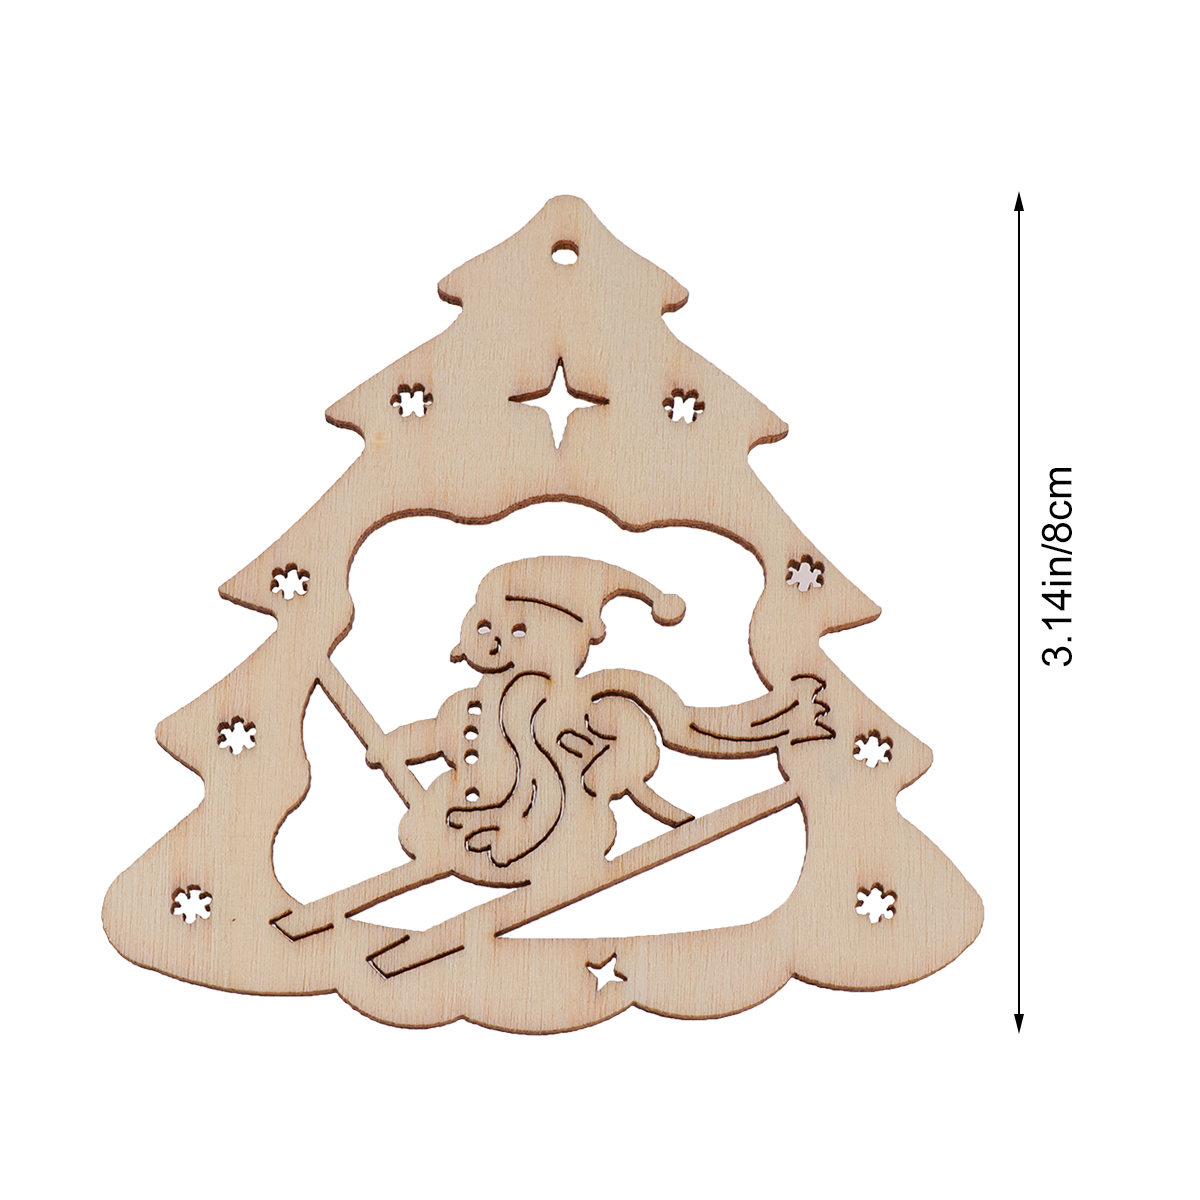 Christmas Tree Cutout.Us 1 68 39 Off 10pcs Wooden Snowman Ckristmas Tree Discs Wood Cutout Slices For Christmas Tree Decor Pendants Hanging Decorations Wood Tags In Wood